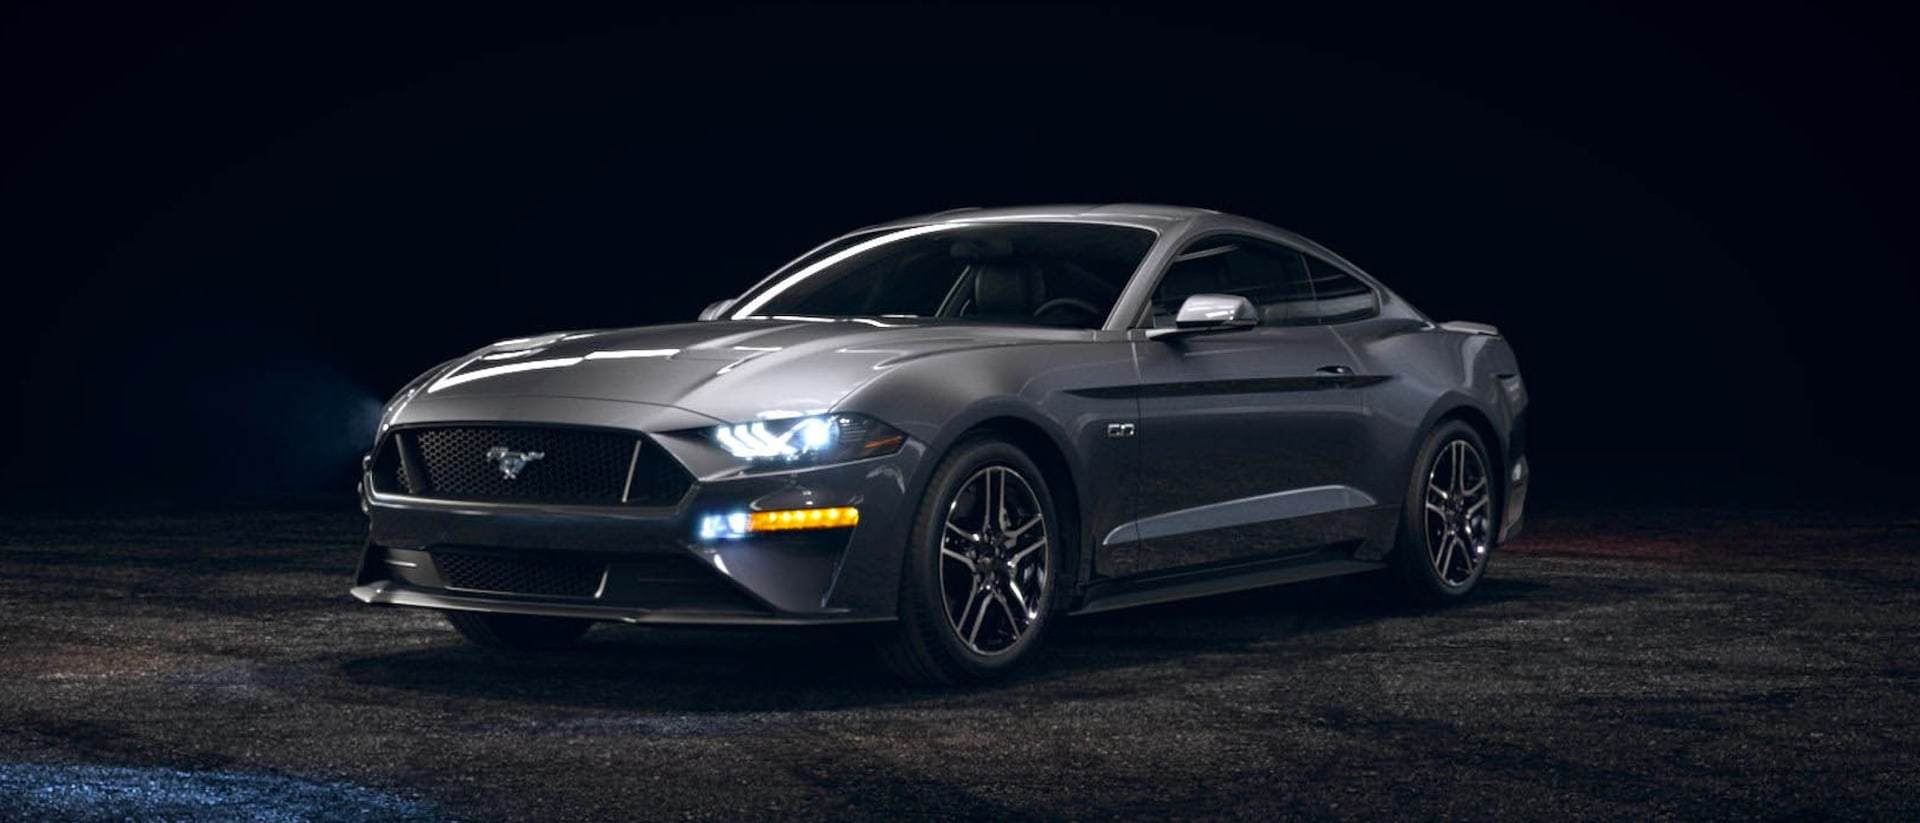 2021 Ford Mustang in Carbonized Gray